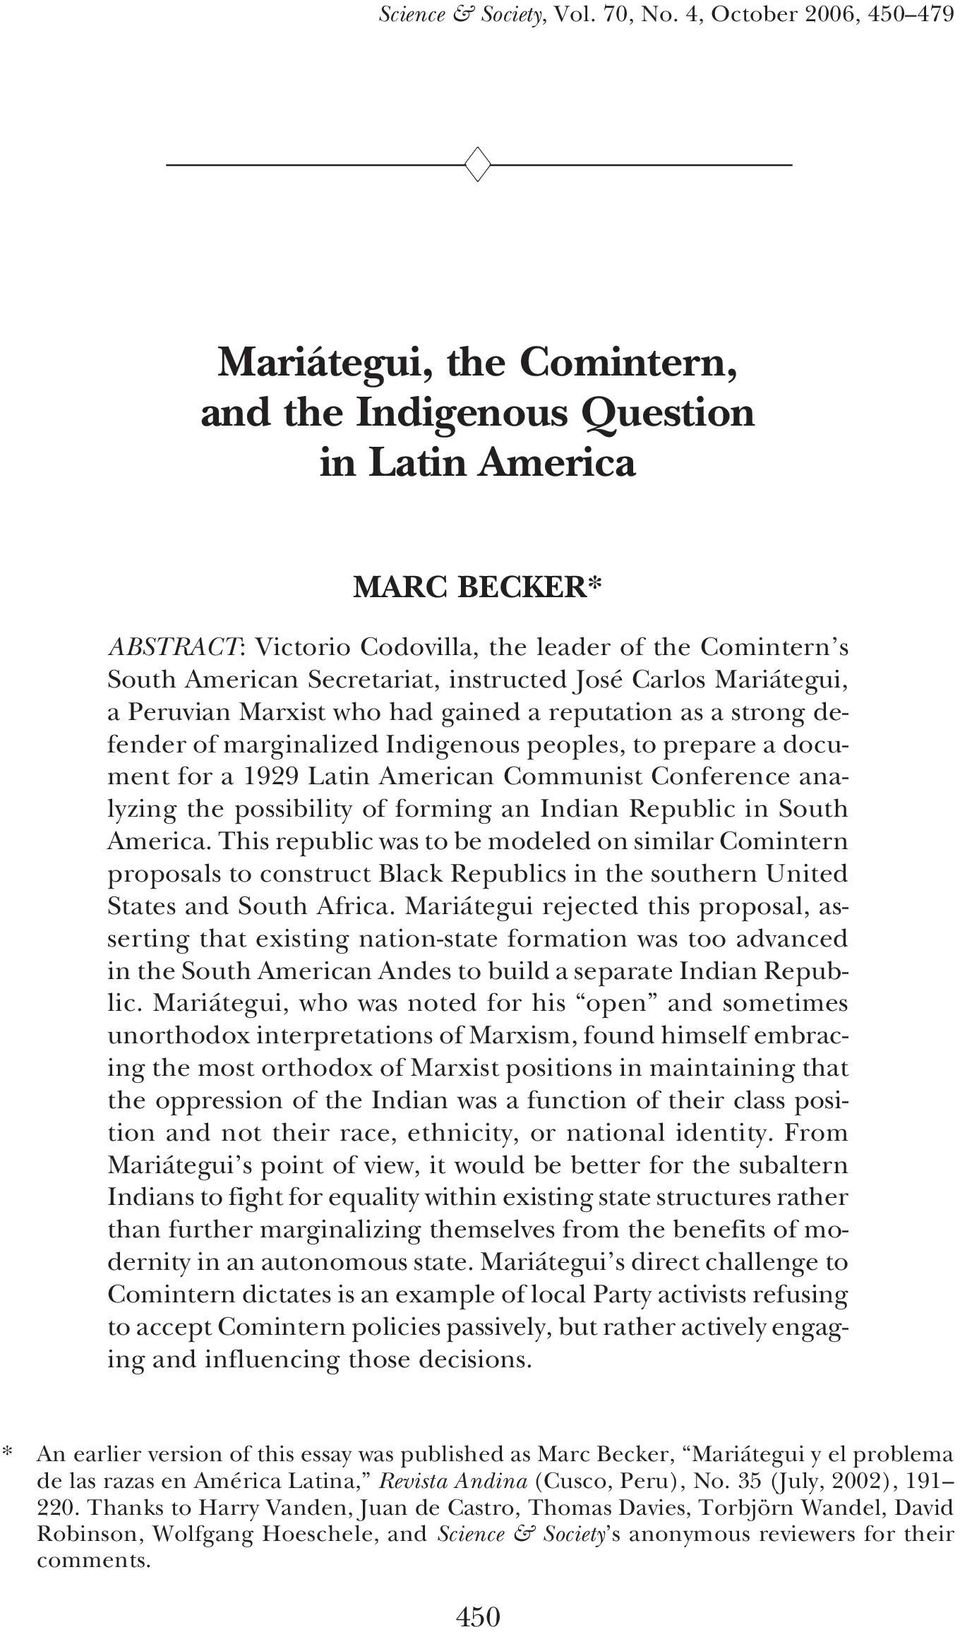 instructed José Carlos Mariátegui, a Peruvian Marxist who had gained a reputation as a strong defender of marginalized Indigenous peoples, to prepare a document for a 1929 Latin American Communist